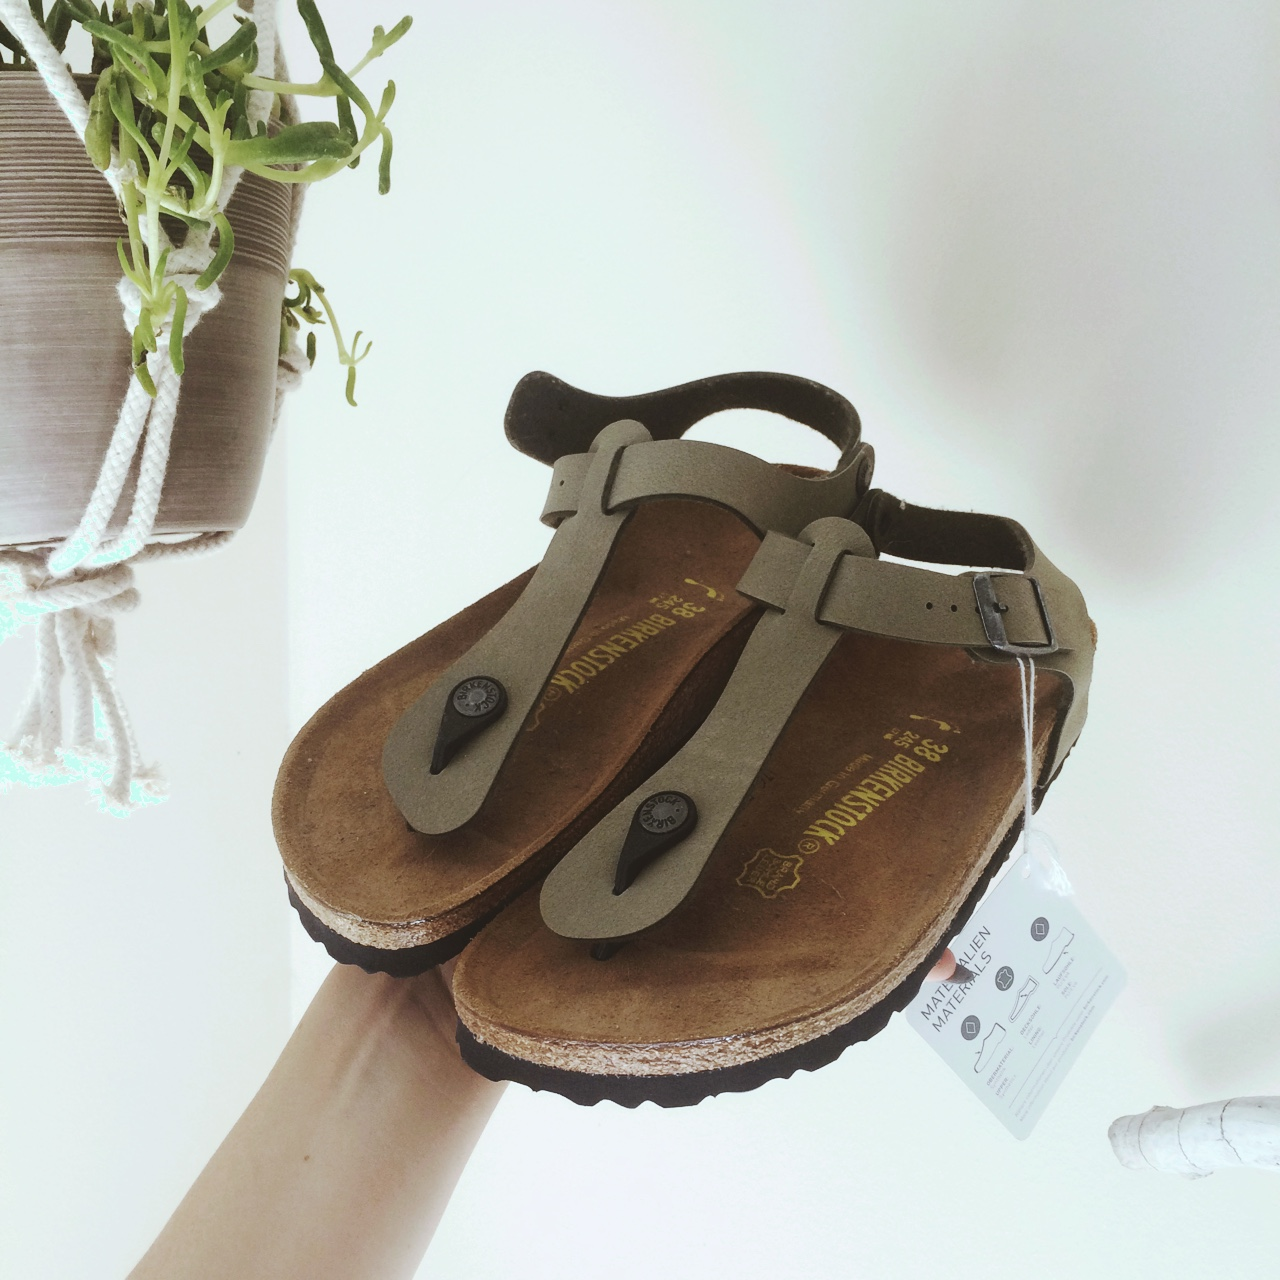 BIRKENSTOCK kairo style PERFECT CONDITION with tag